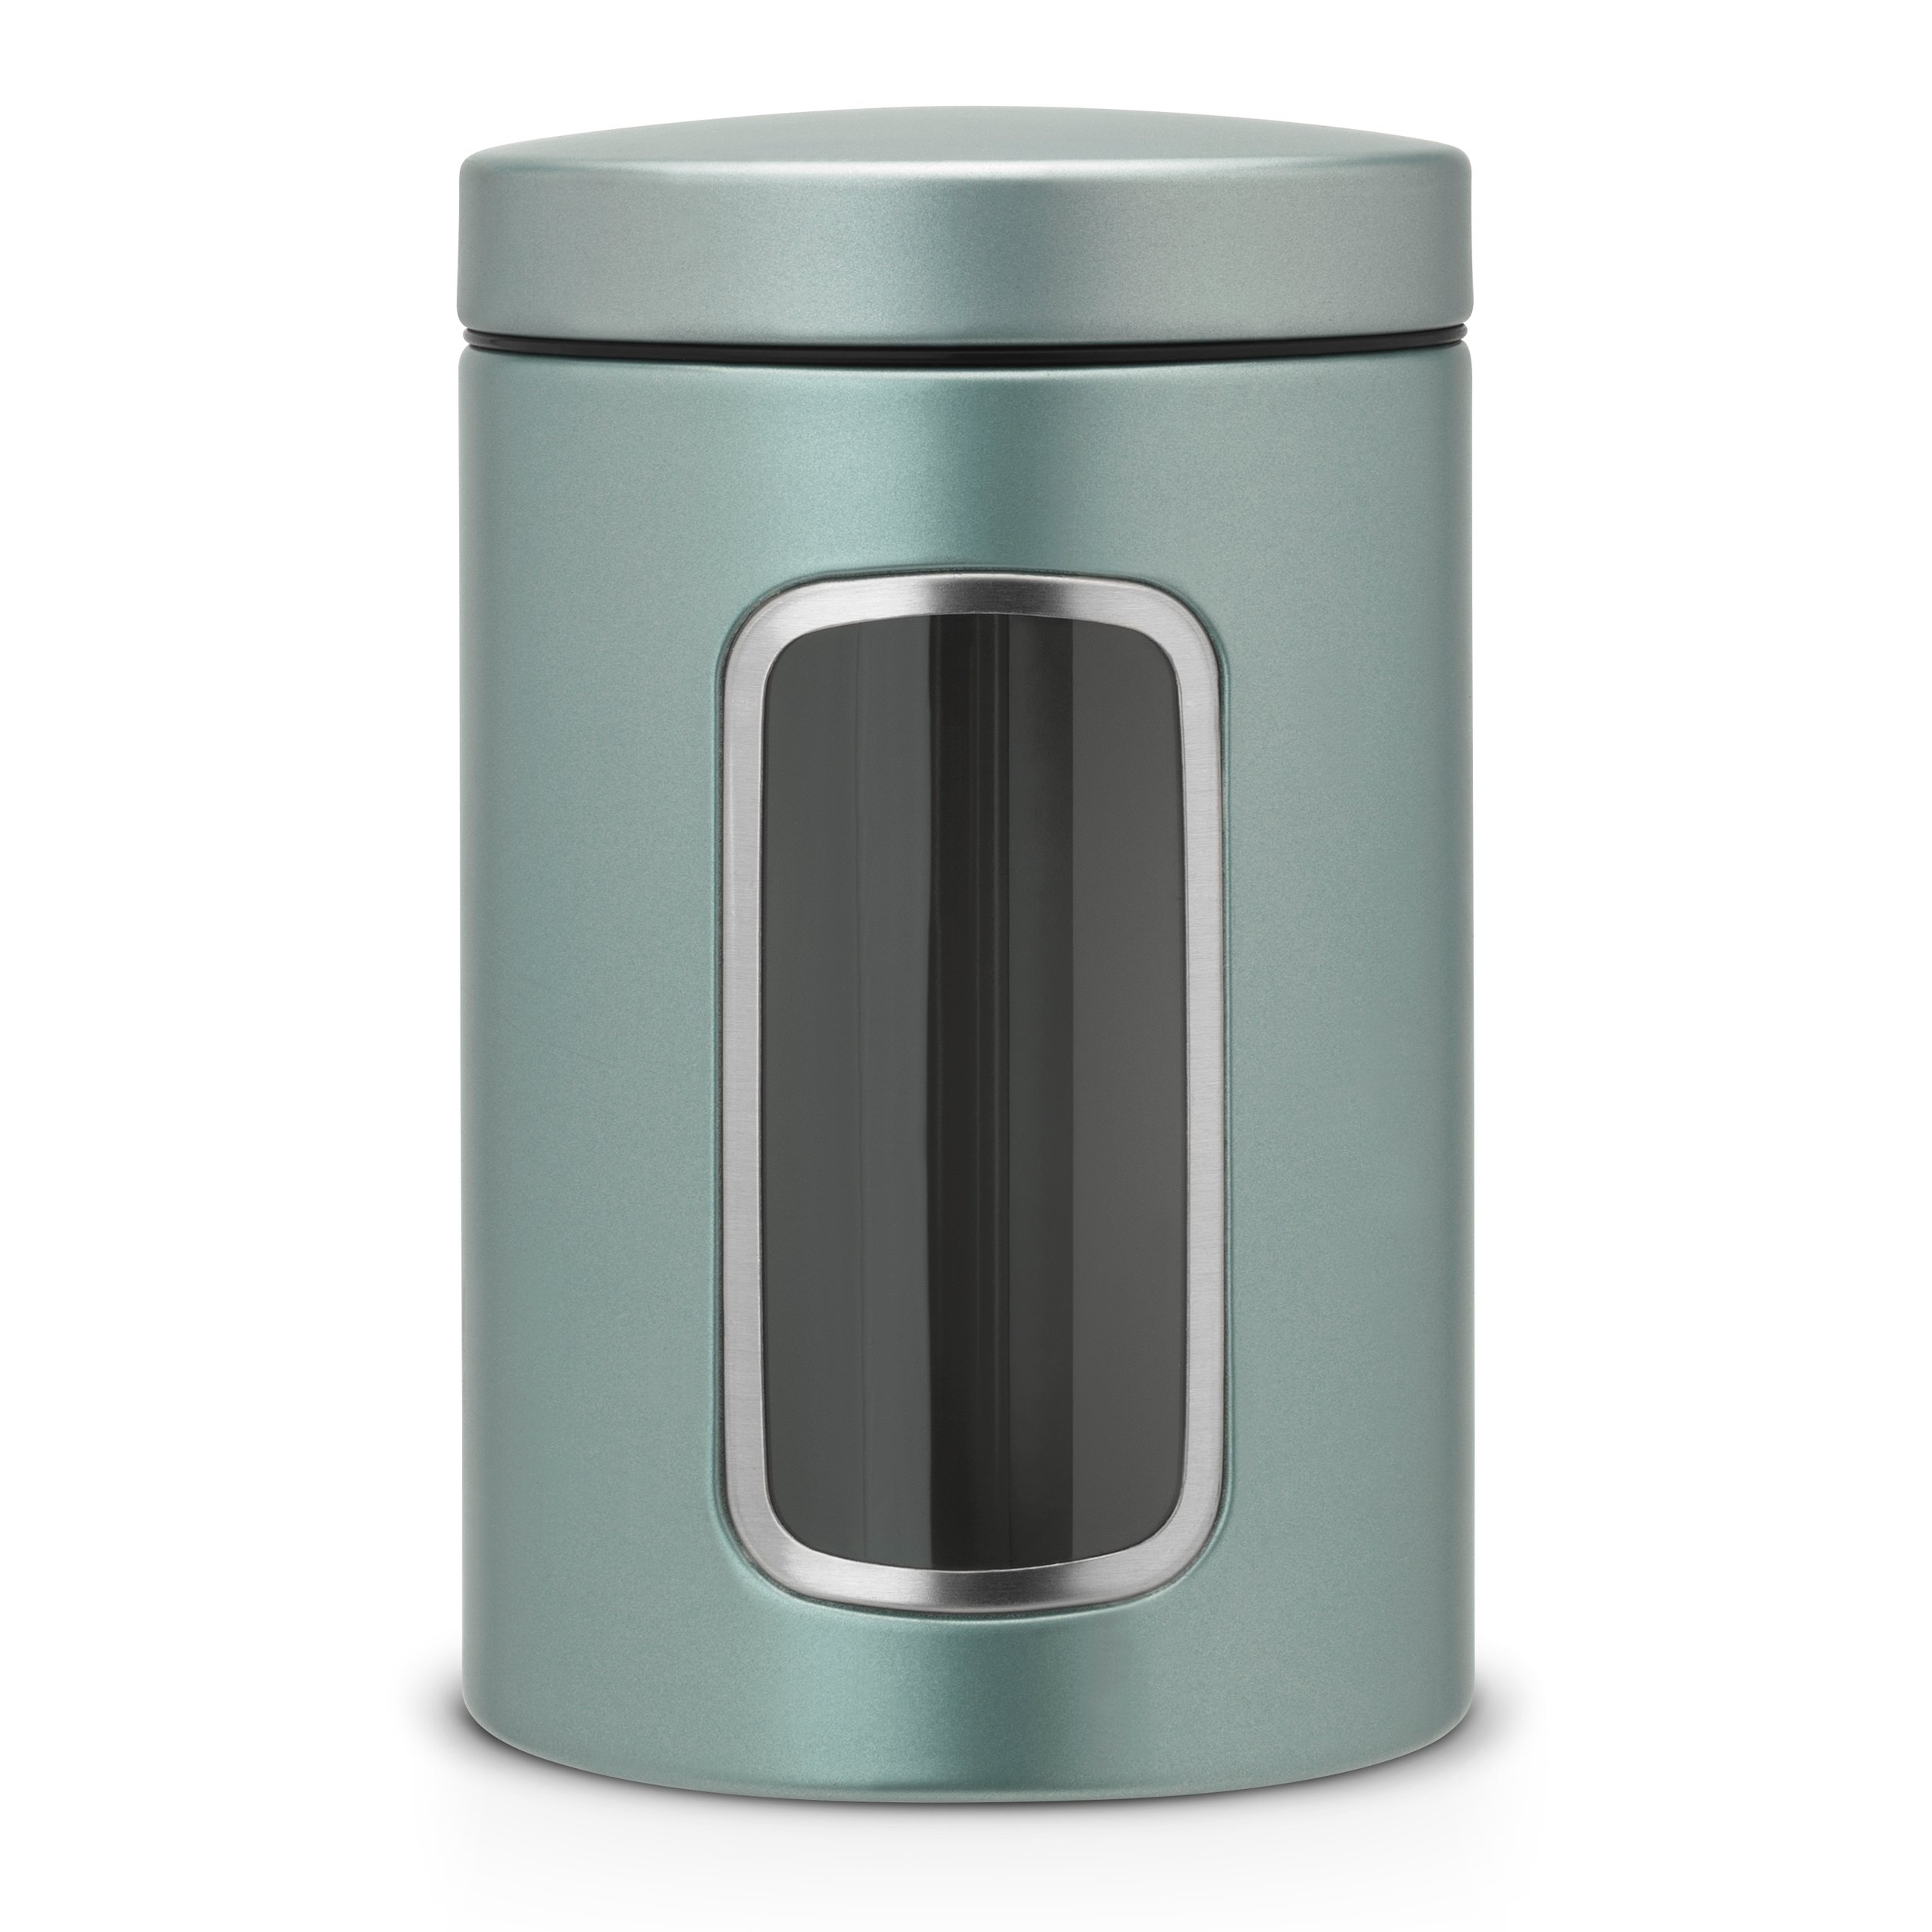 Brabantia Round Canister Jar with Window and Accessories, 1.4 L - Metallic Mint